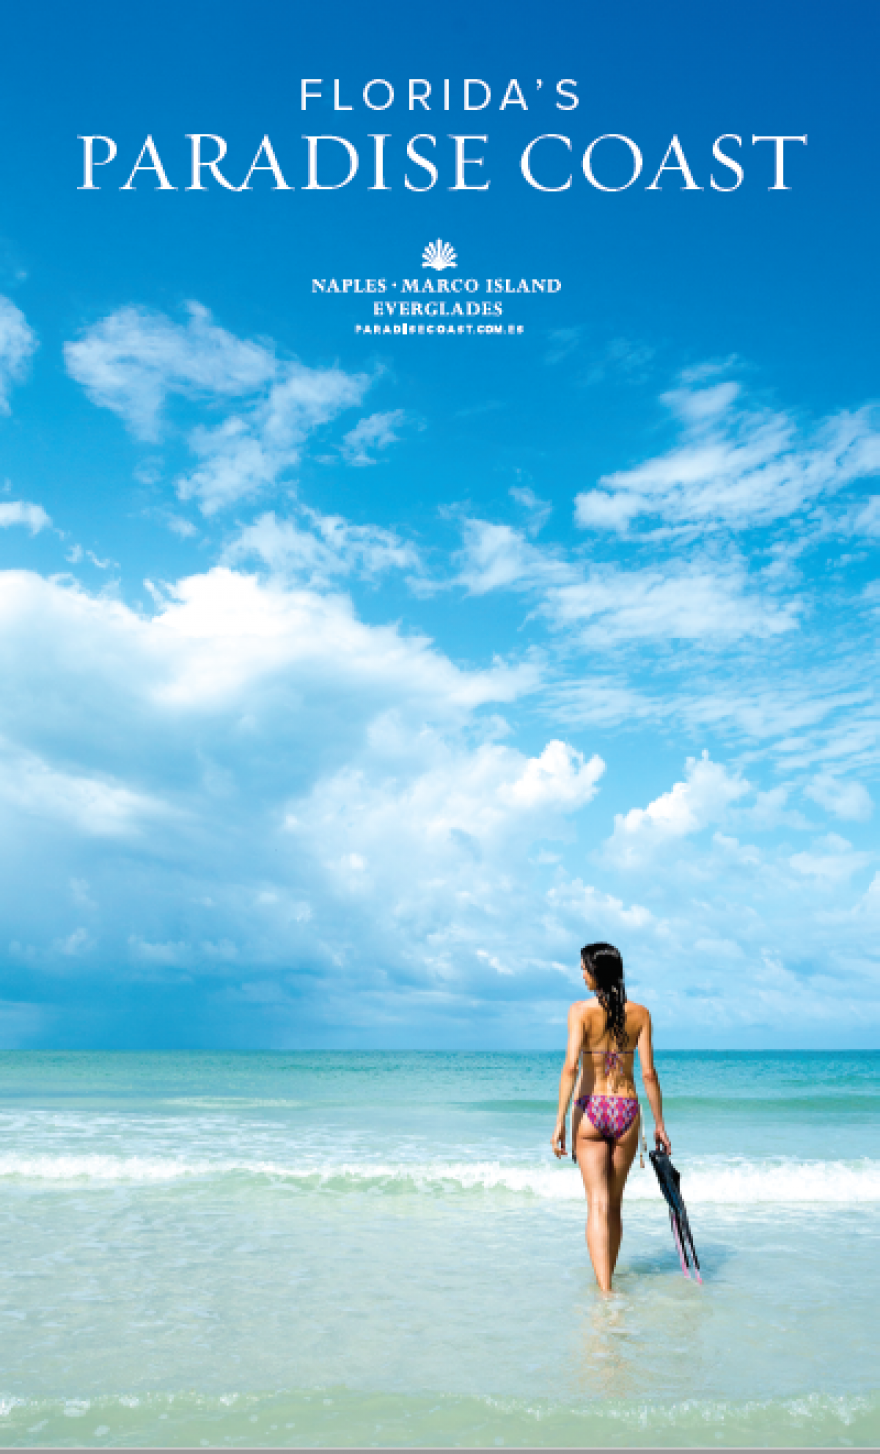 The cover photo of the Print Guide featuring a woman walking on the beach